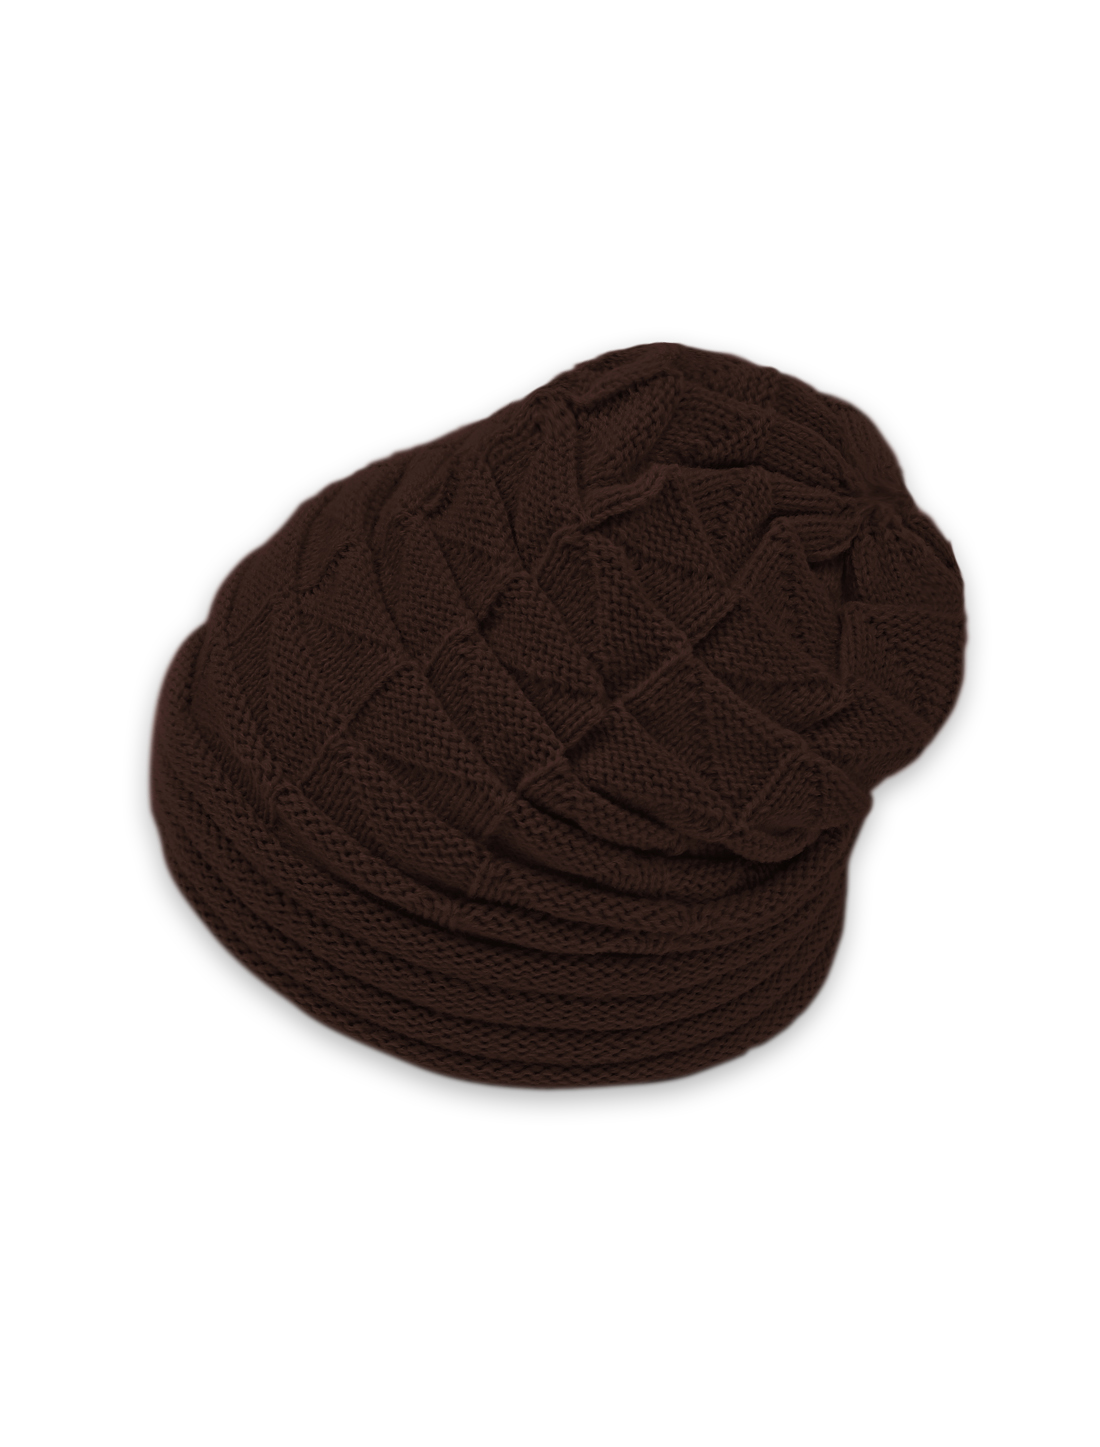 Unisex Roll Up Hem Triangle Pattern Stretchy Knit Beanie Hat Brown